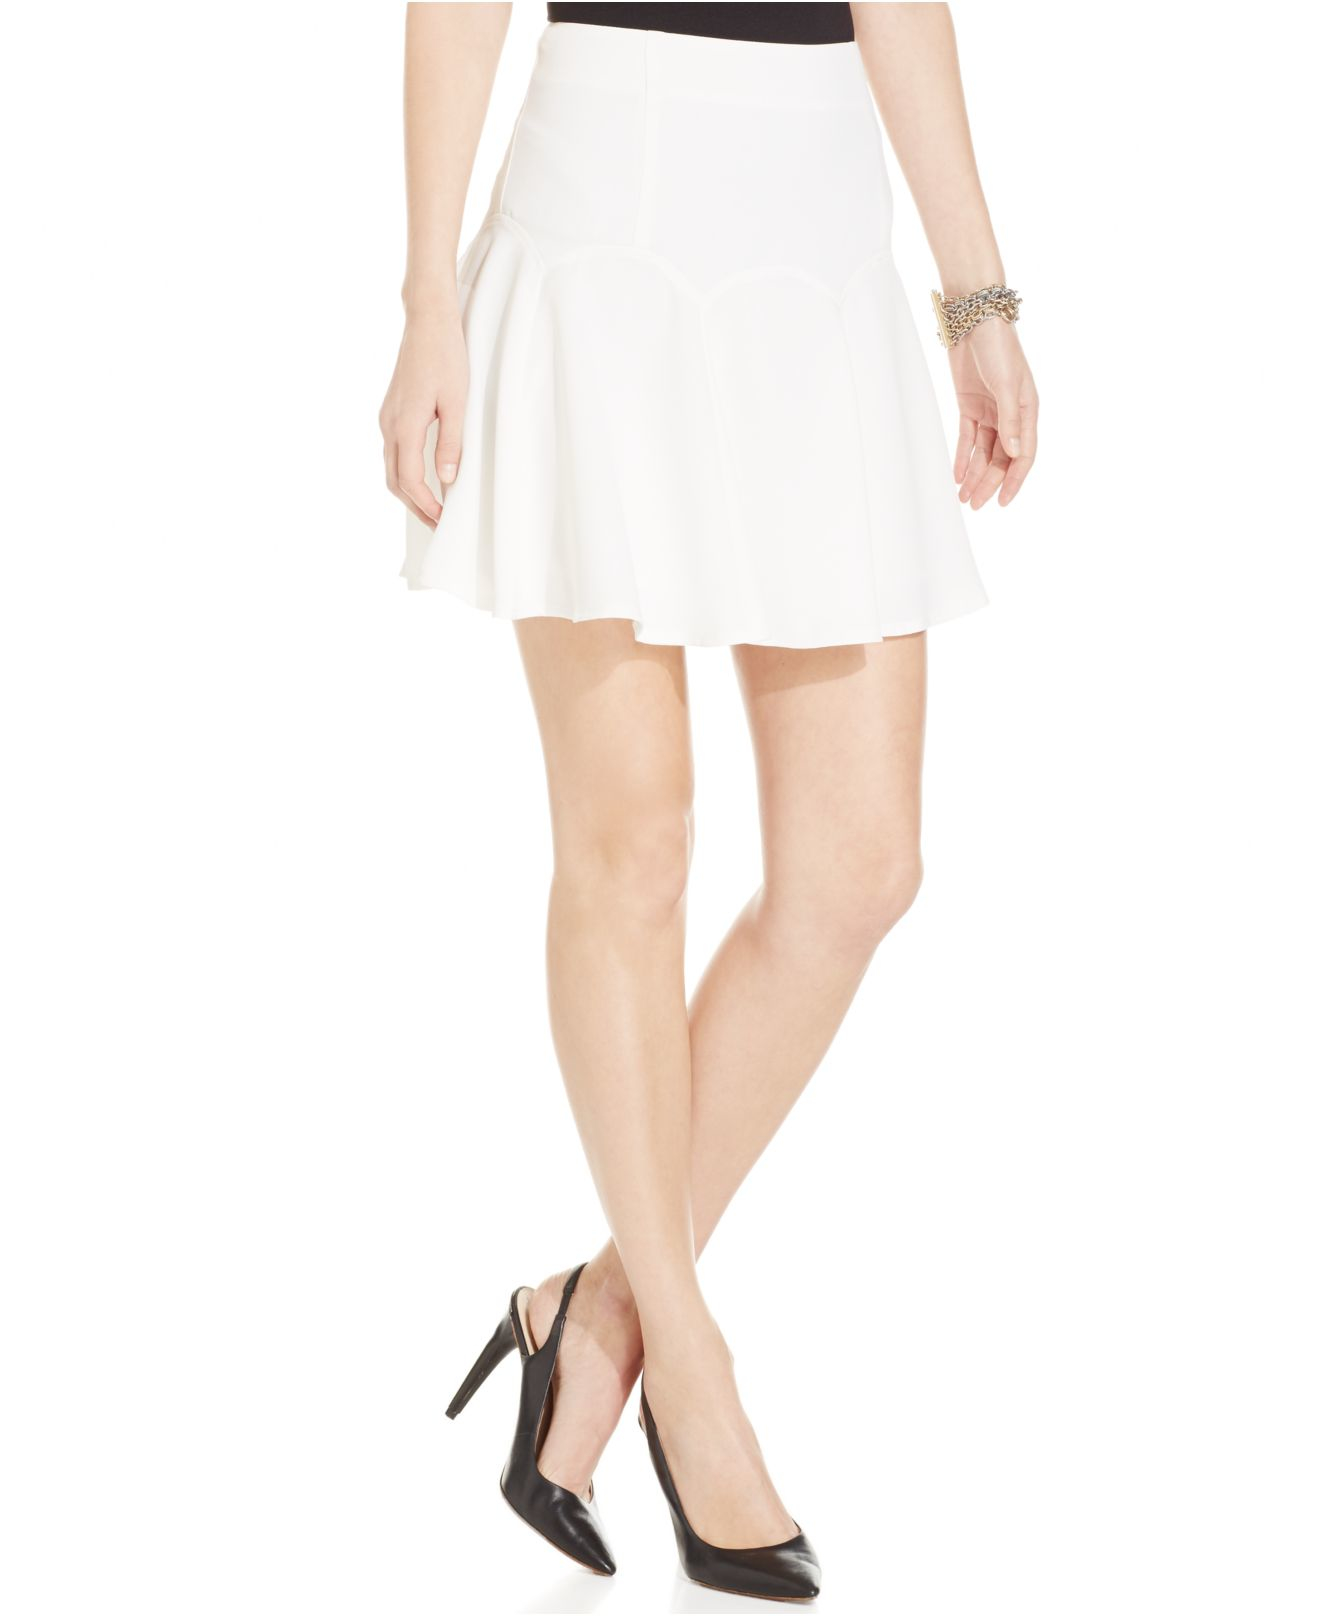 Cece by cynthia steffe Crepe Flounce Skirt in Natural